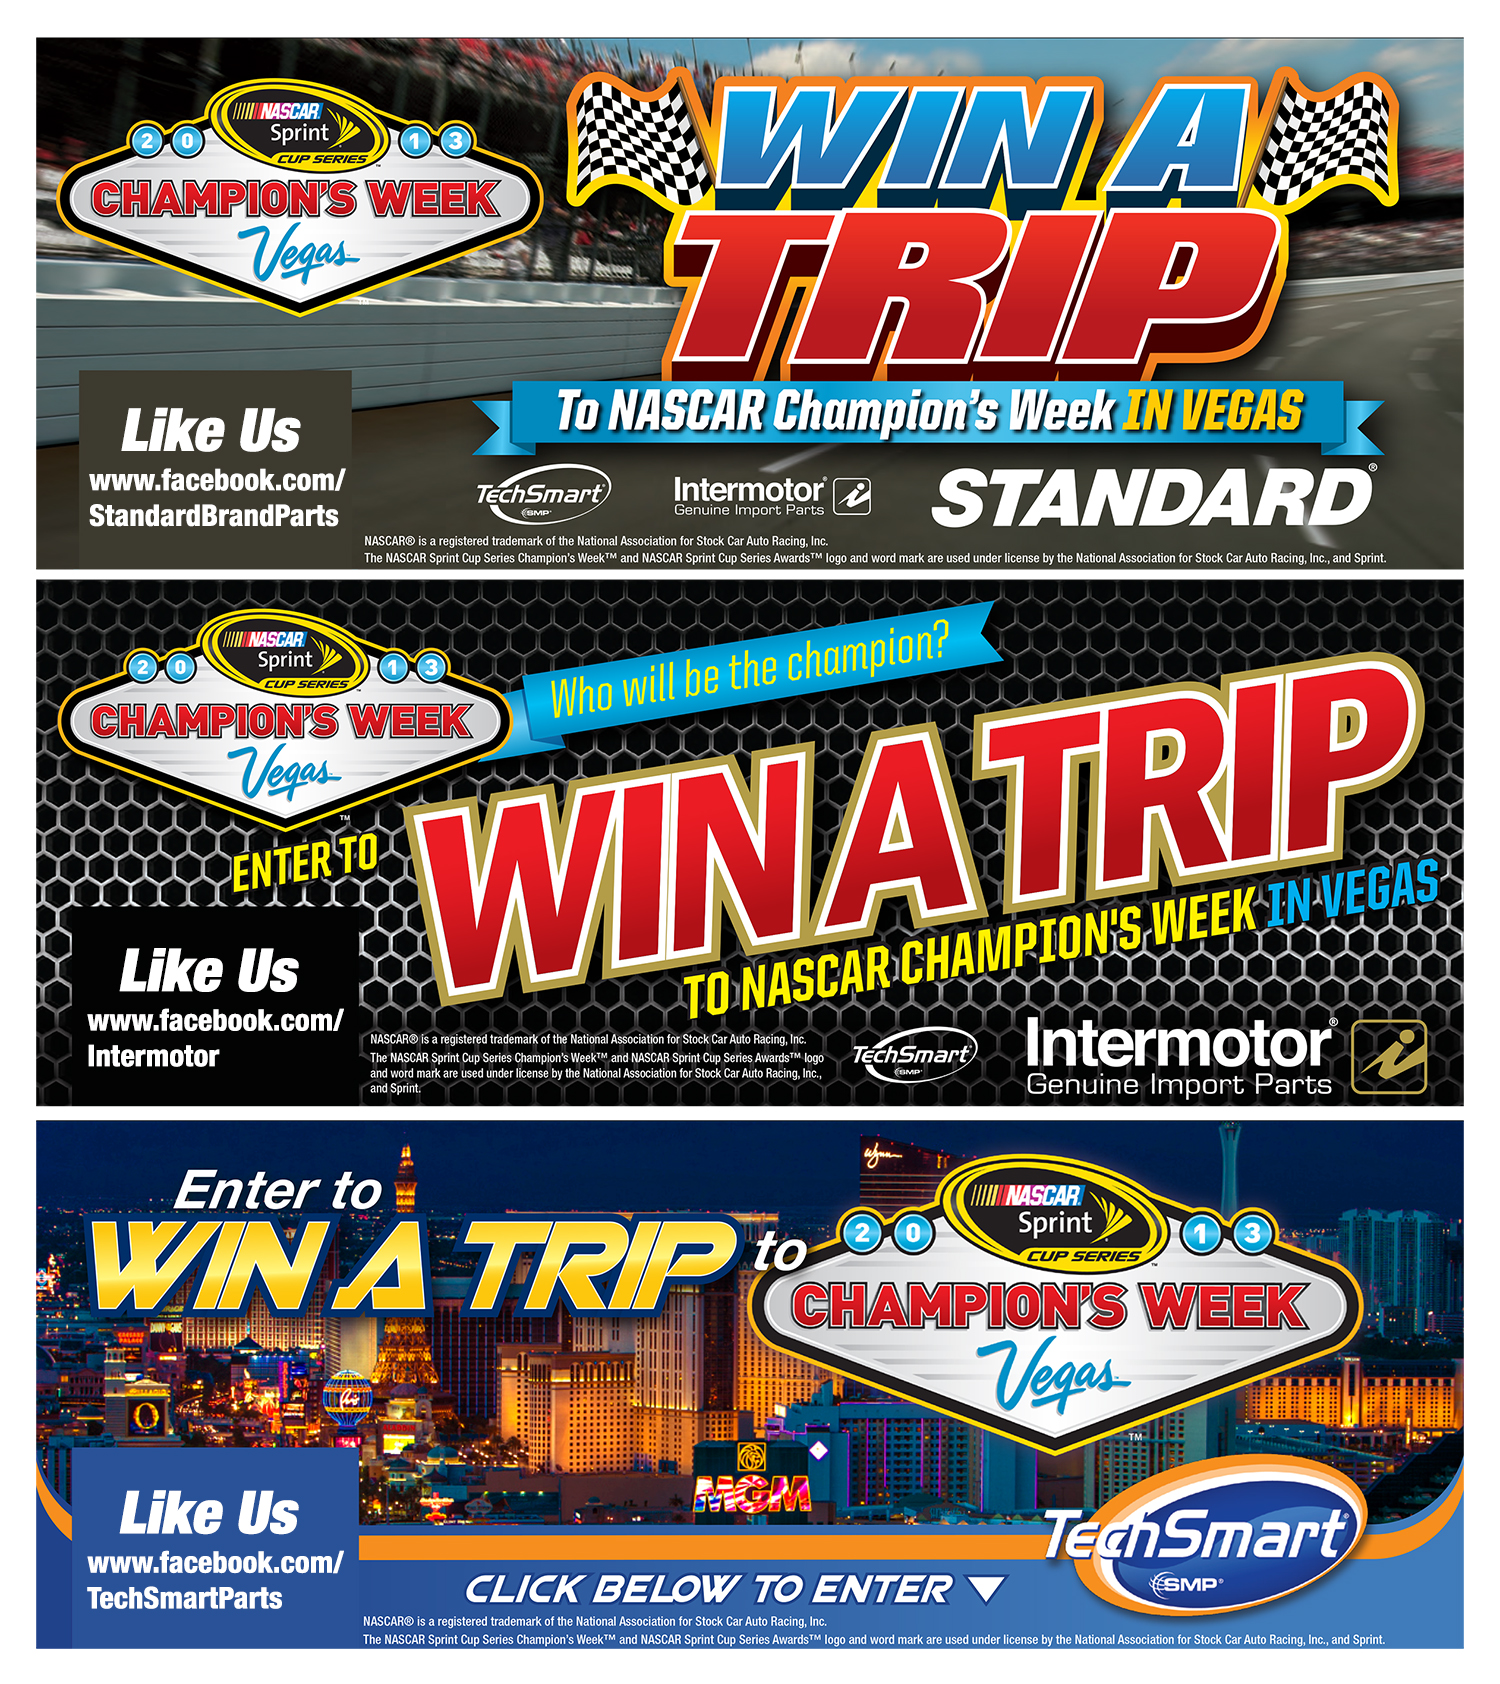 SMP fall promo offers NASCAR trip for two